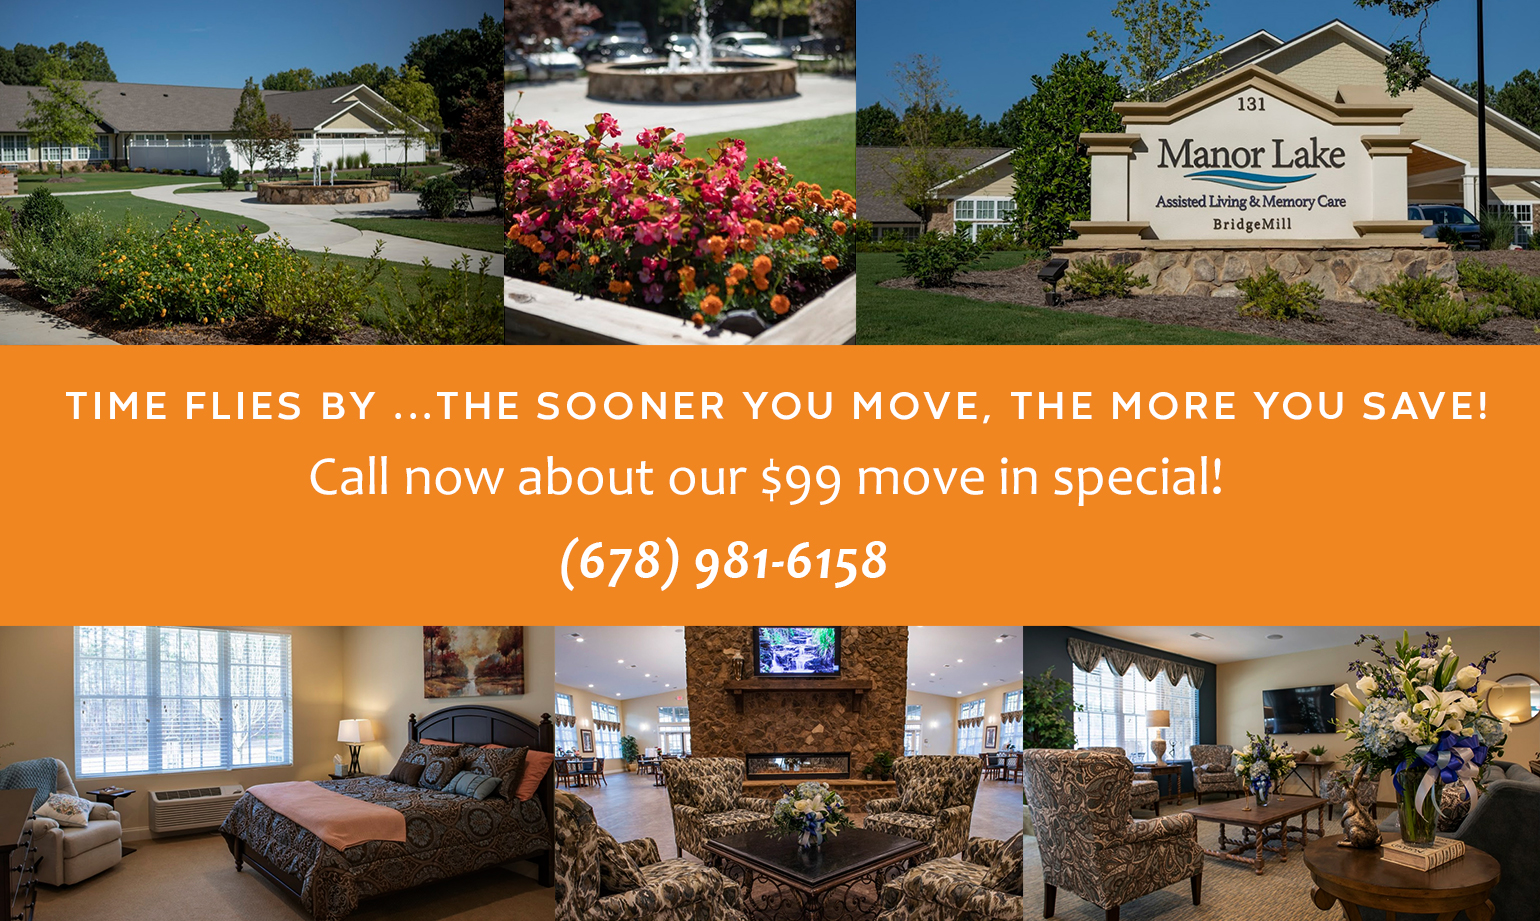 Call now about our $99 move in special!